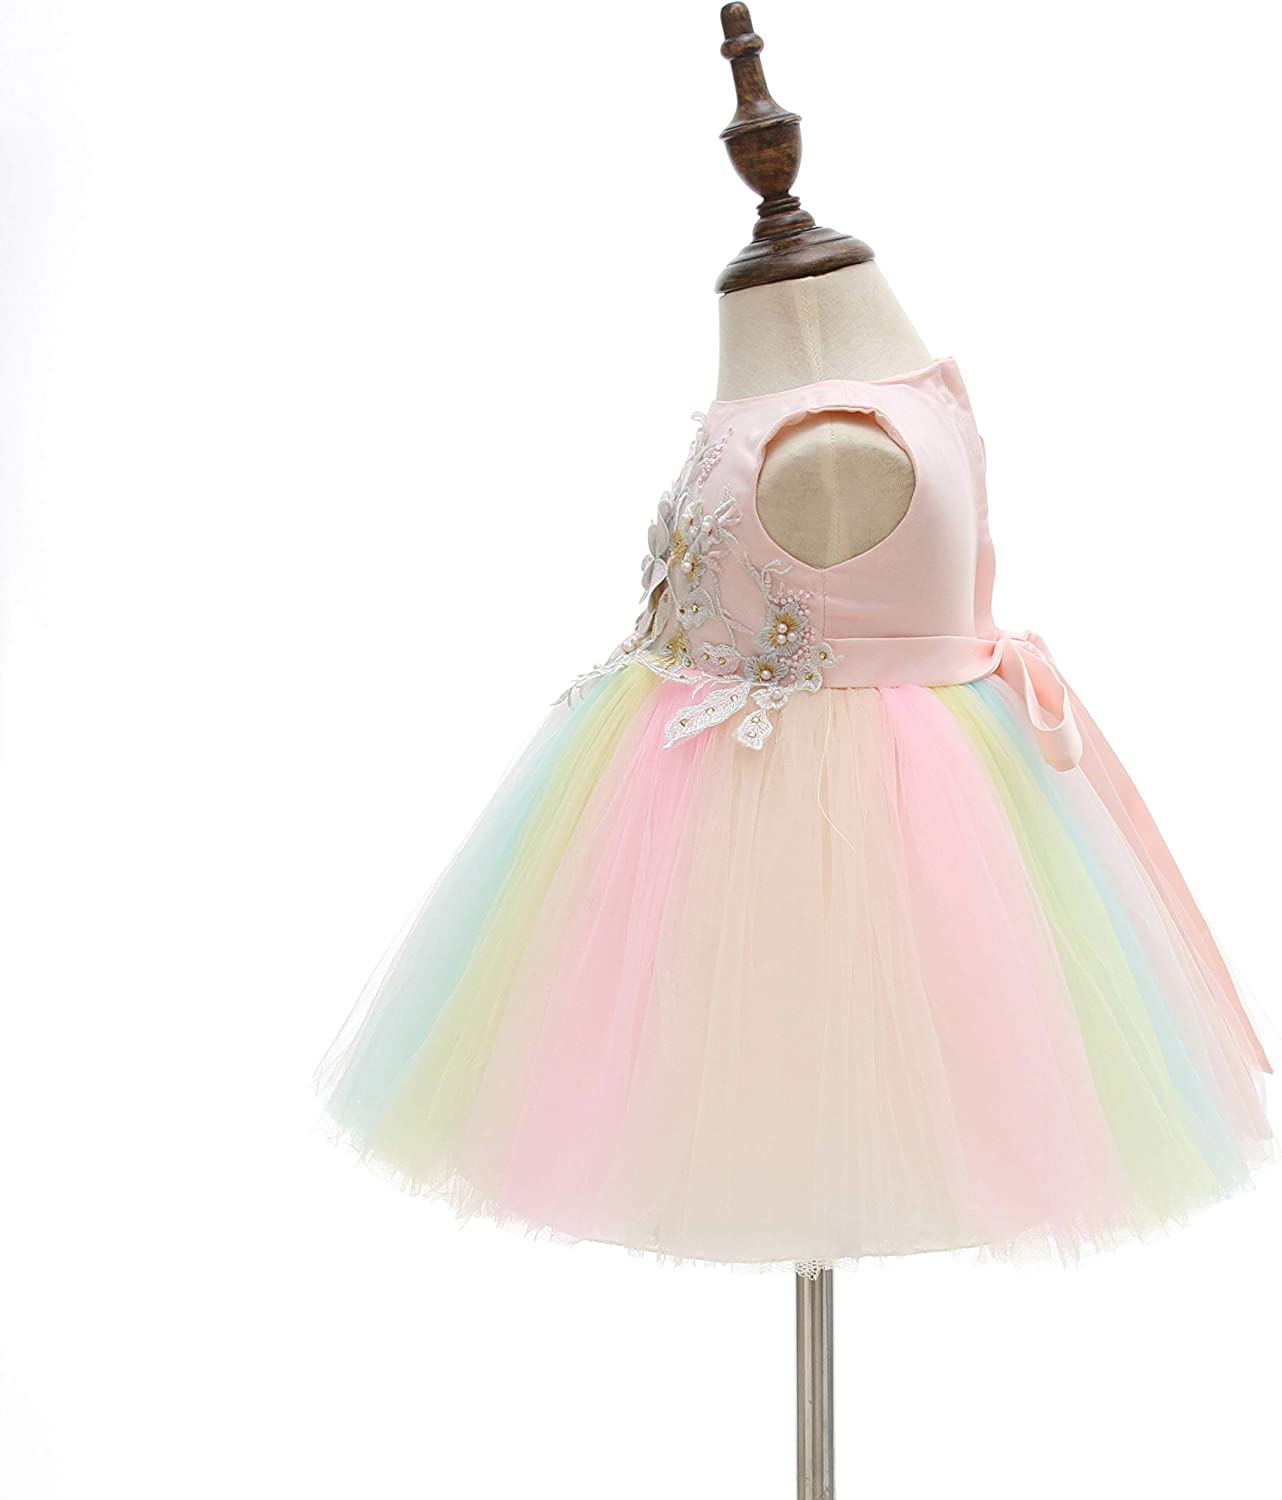 Weileenice Baby Girls Costume Cosplay Dress Pastel Tulle 3D Embroidery Beading Princess Tutu Dresses